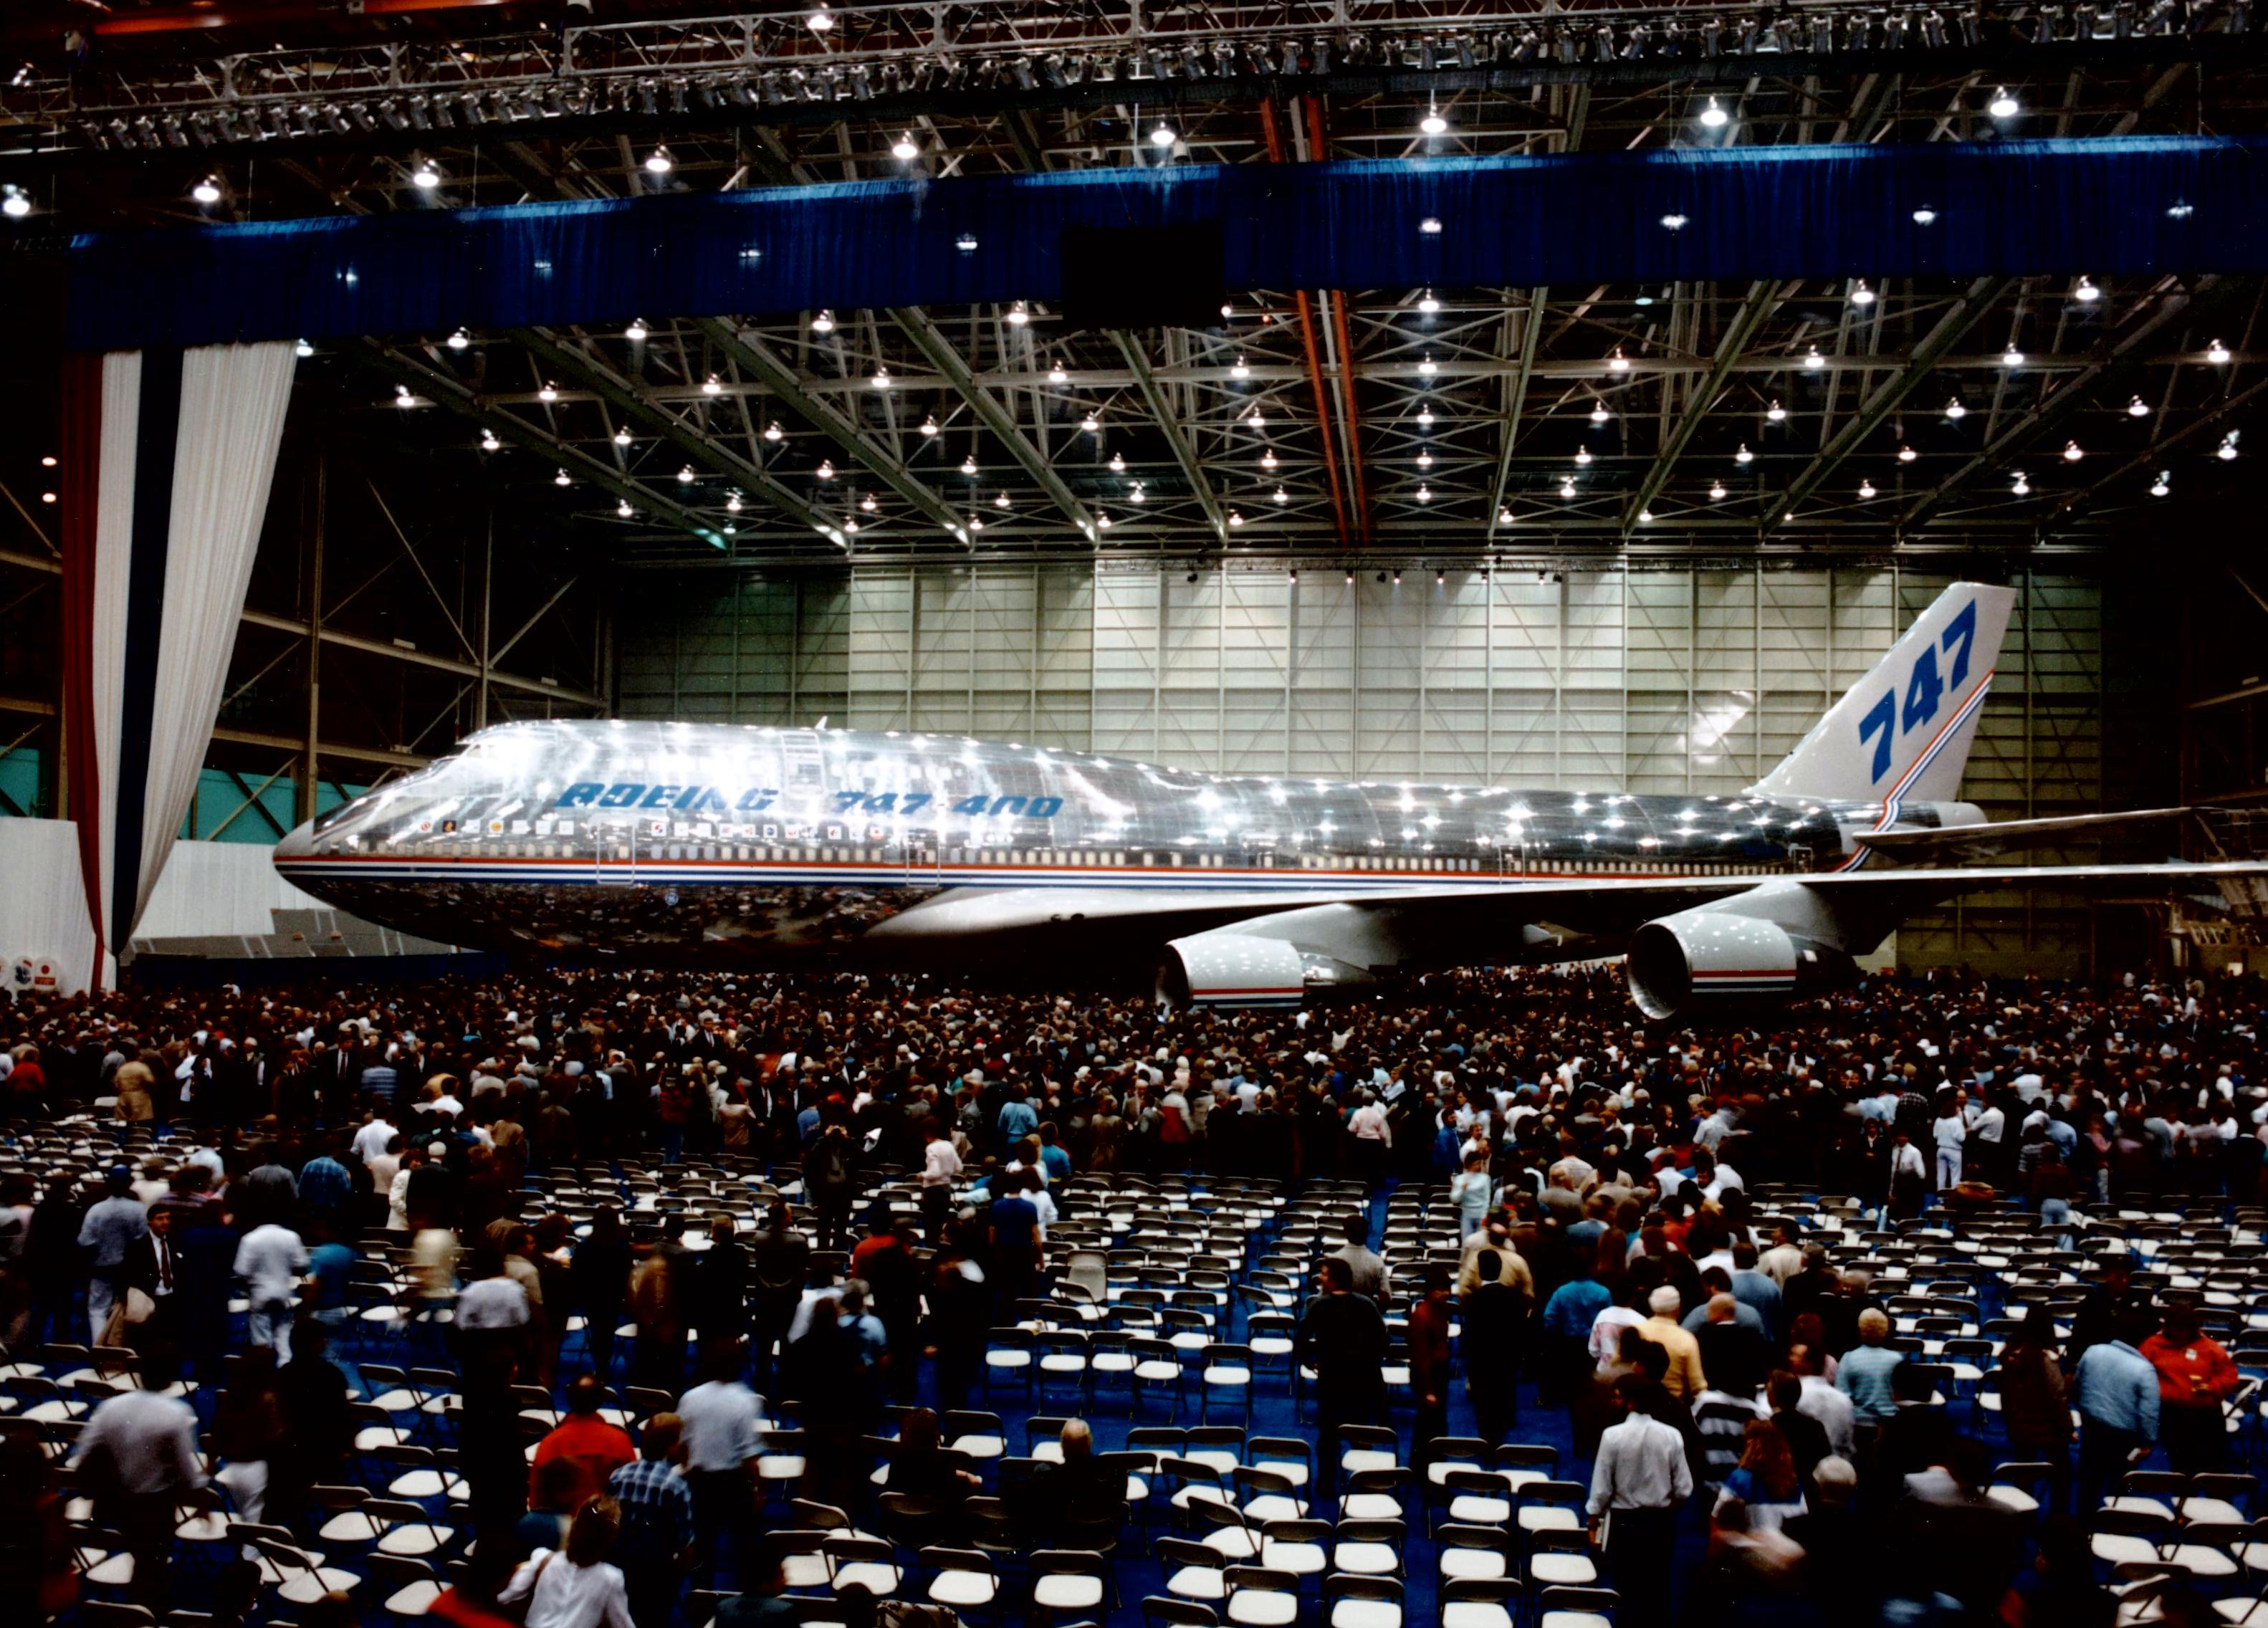 Boeing 747-400 Event with plane